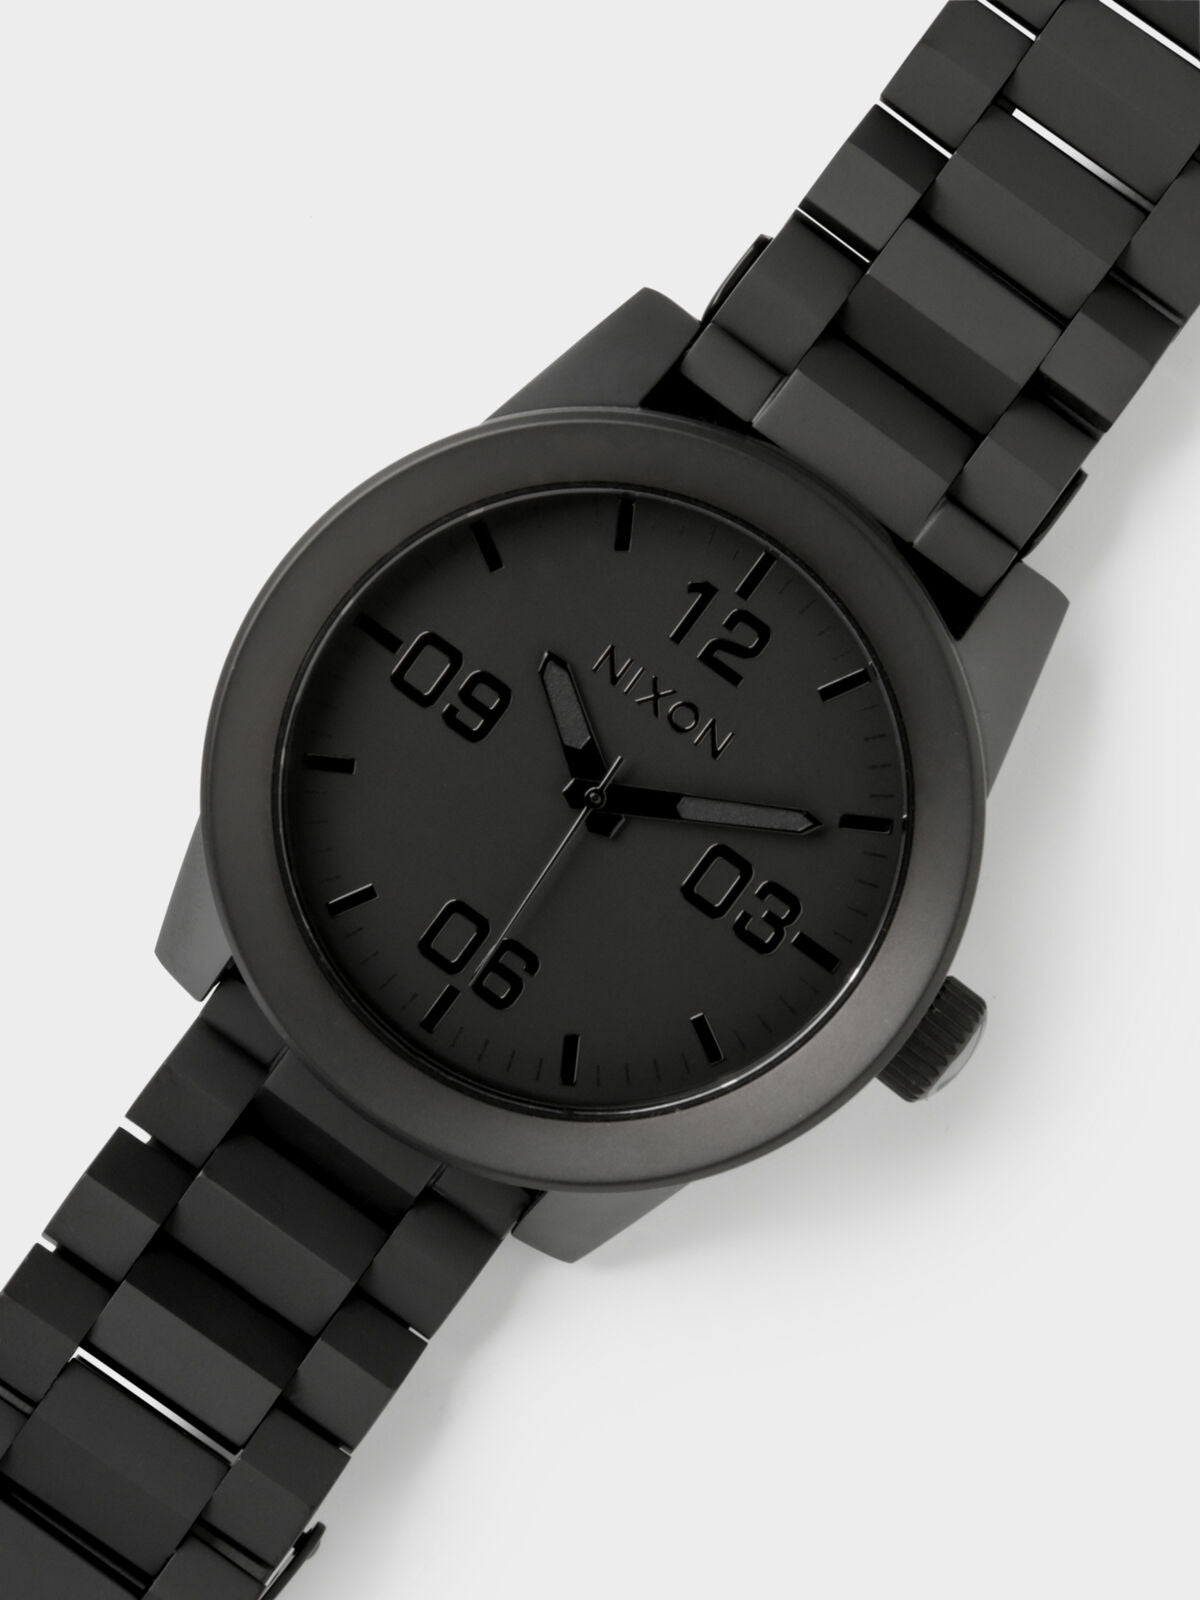 Coroporal 48mm Analogue Watch in Matte Black